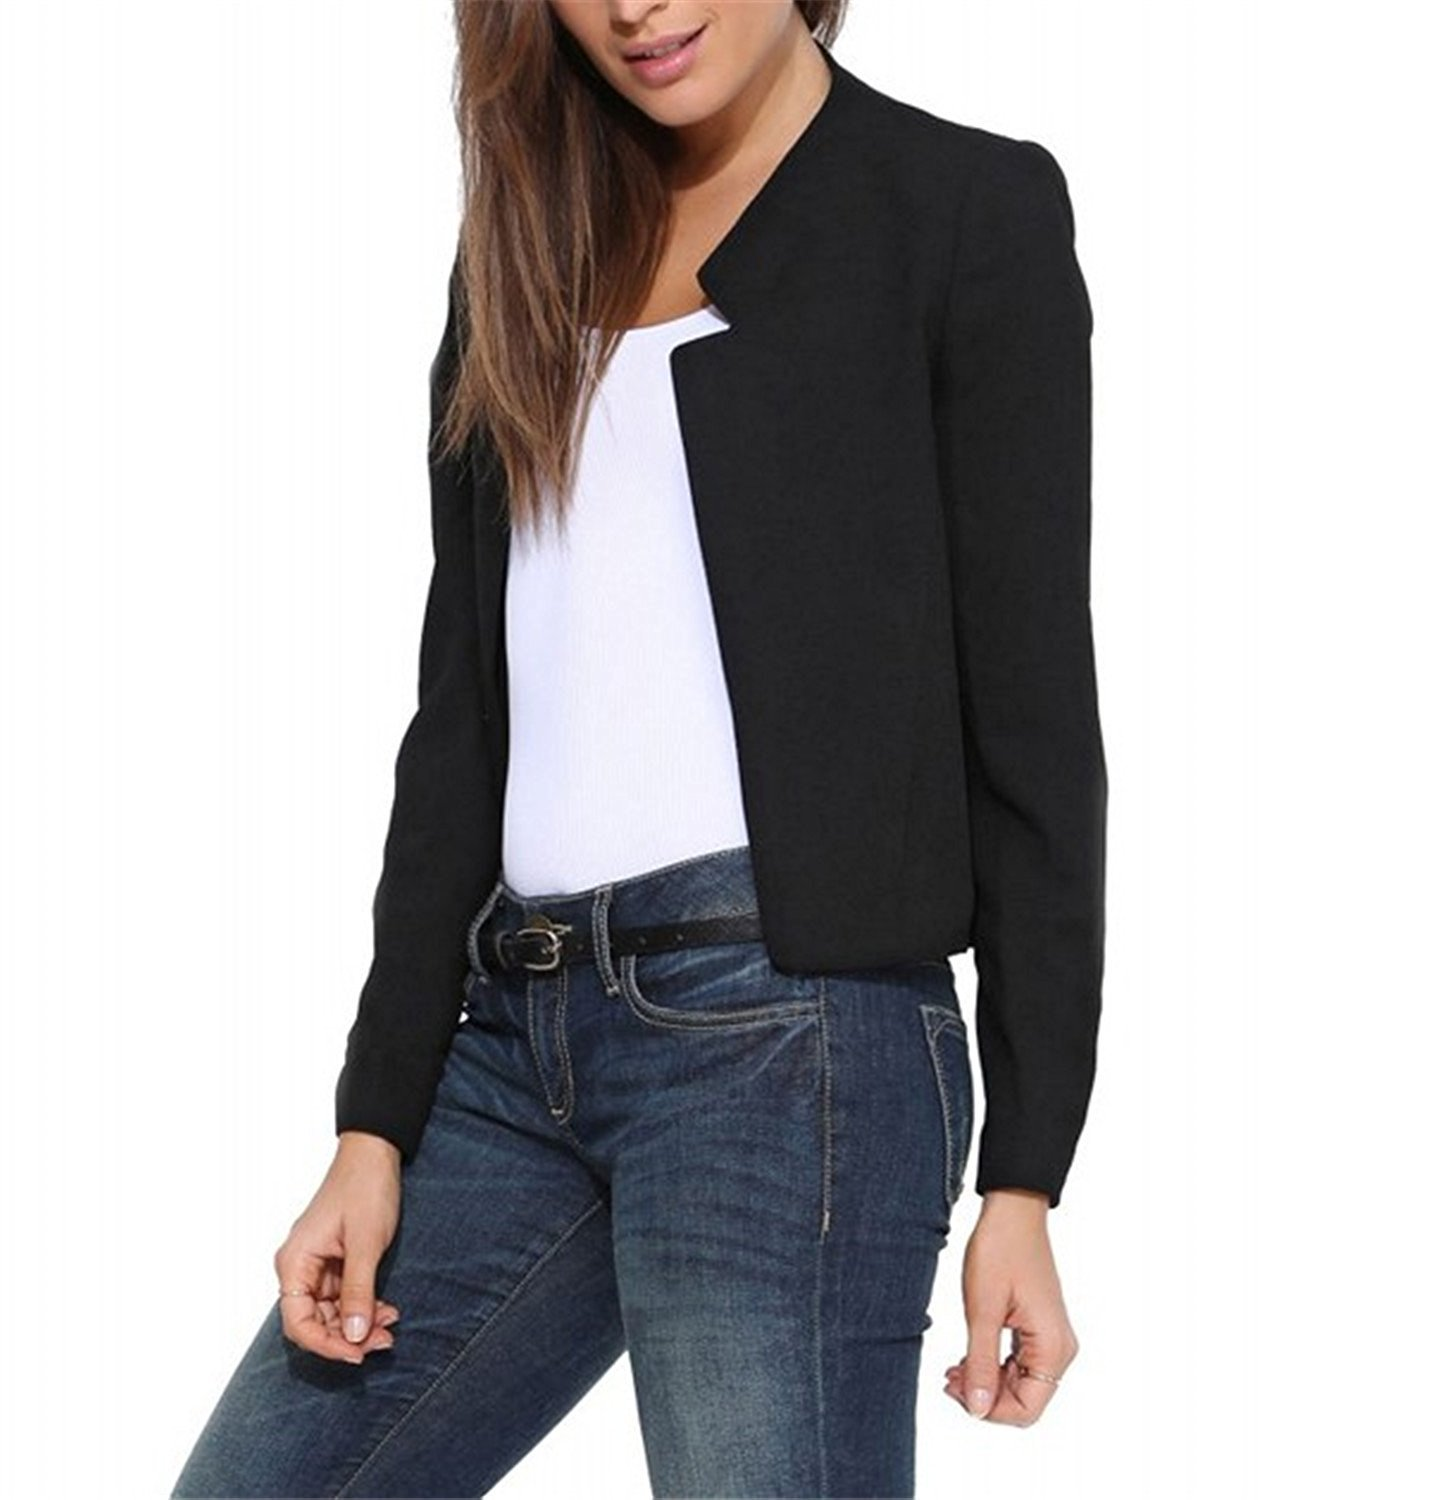 Toping Fine Spring Autumn New Women's Short Blazer Coat Candy Color Casual Suit Blazer and Jacket Solid Female Blazers WhiteMedium by Toping Fine wool-outerwear-coats (Image #2)